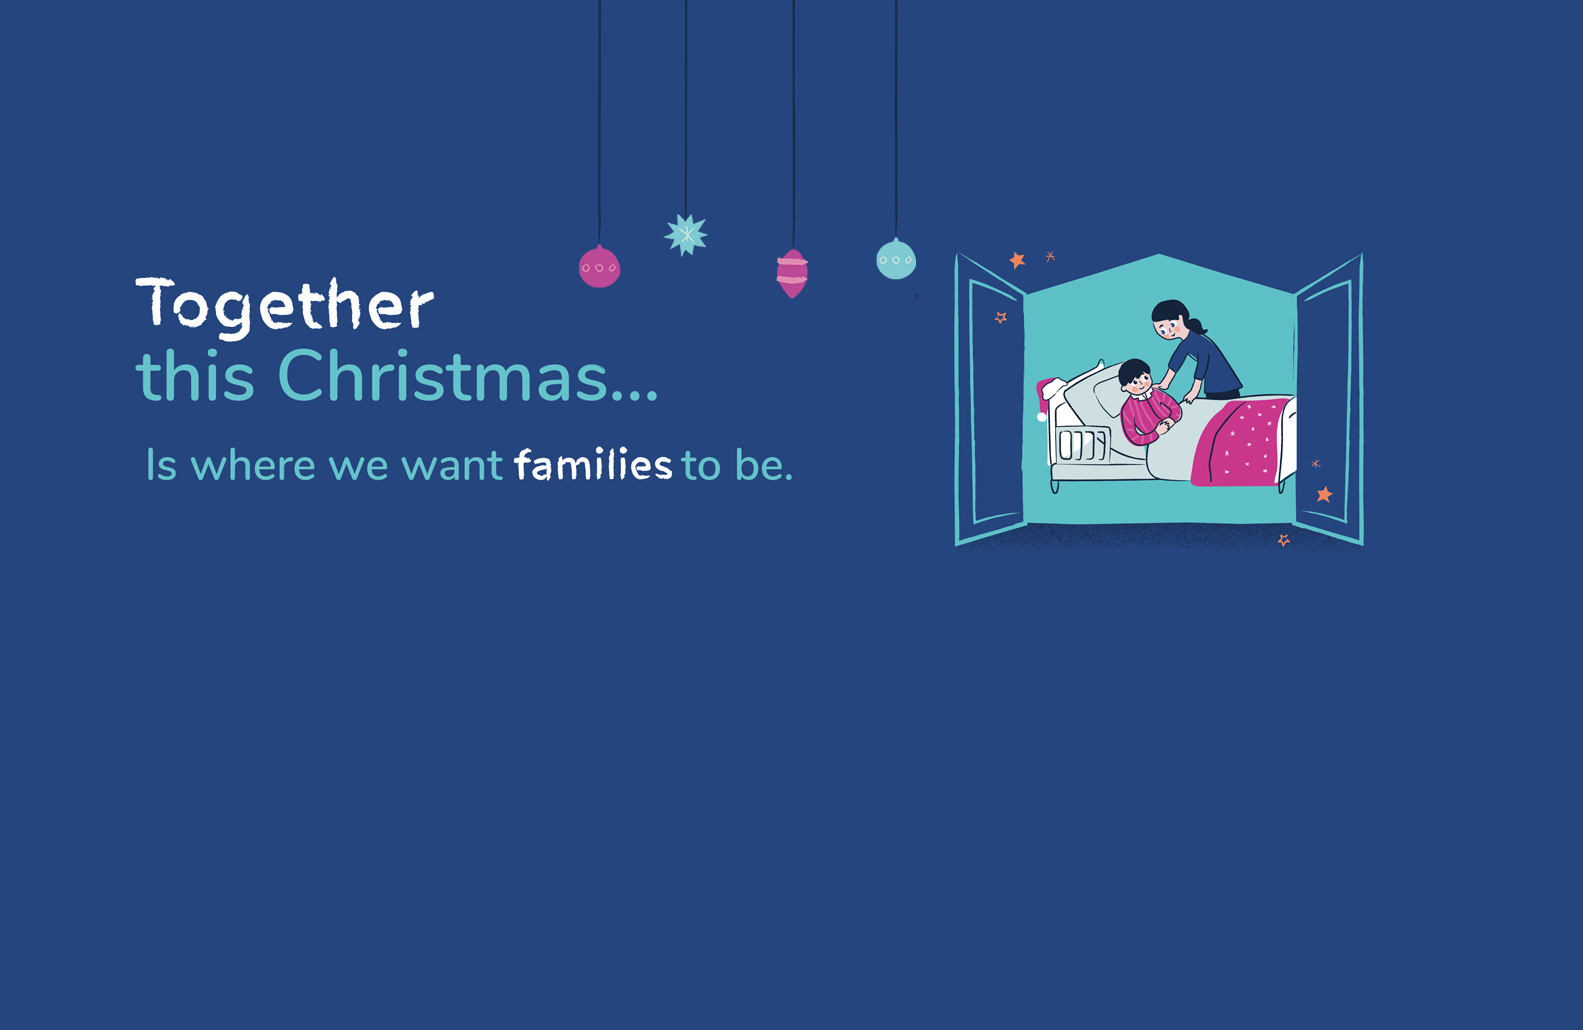 We're here, so families can be together